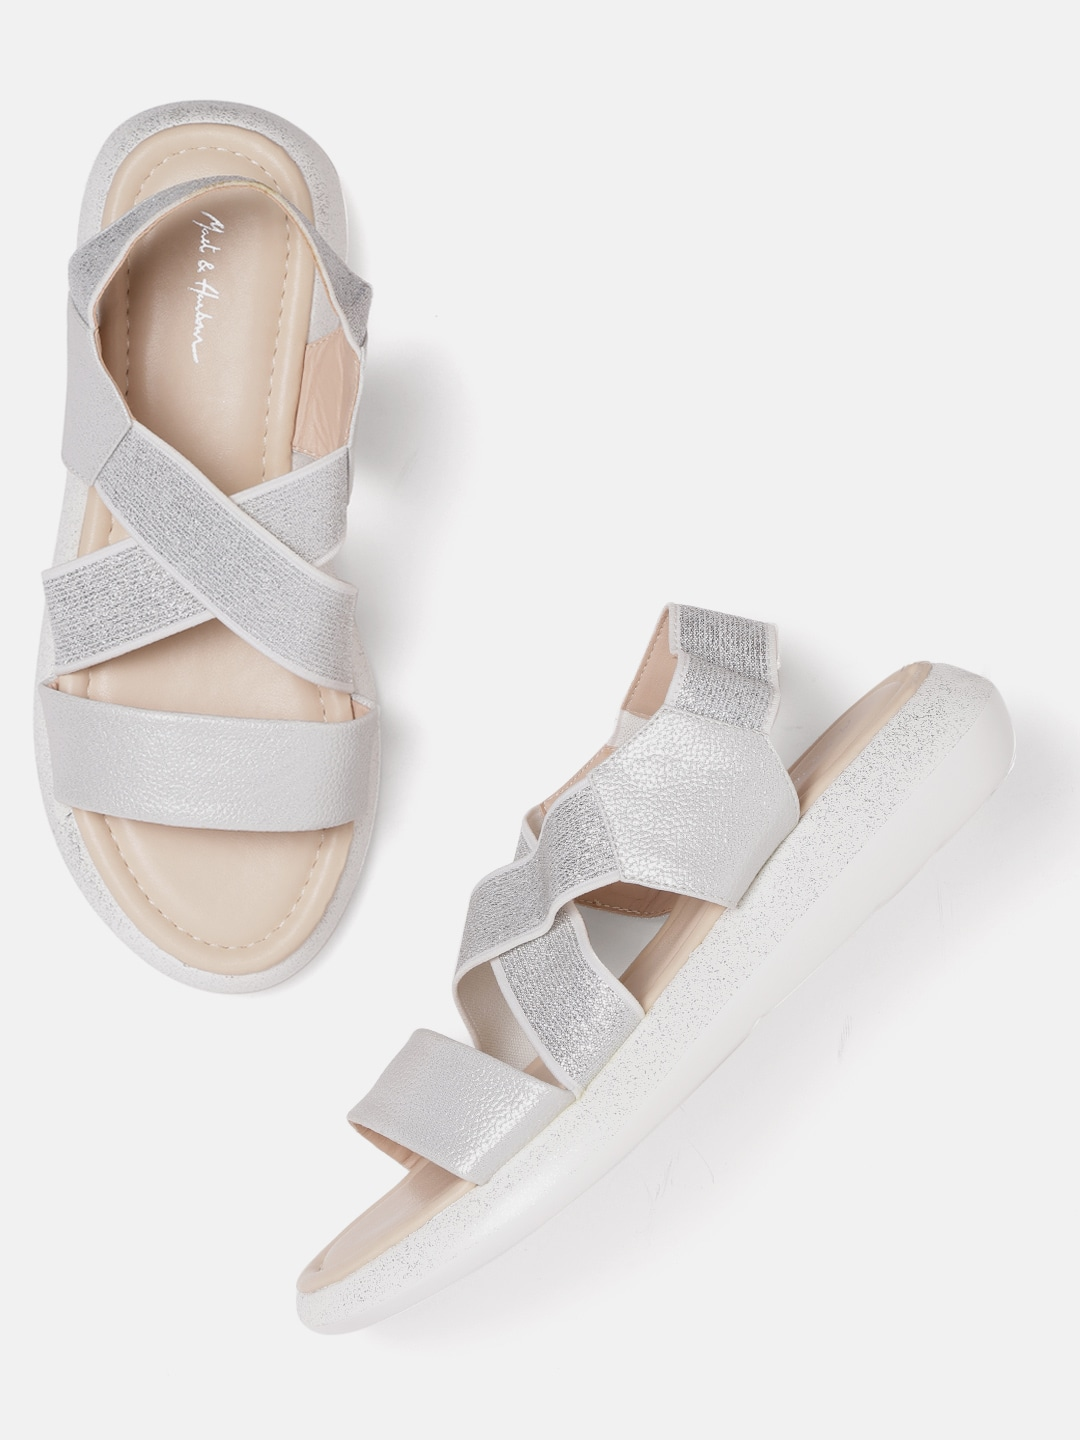 Silver-Toned Shimmer Open Toe Flats